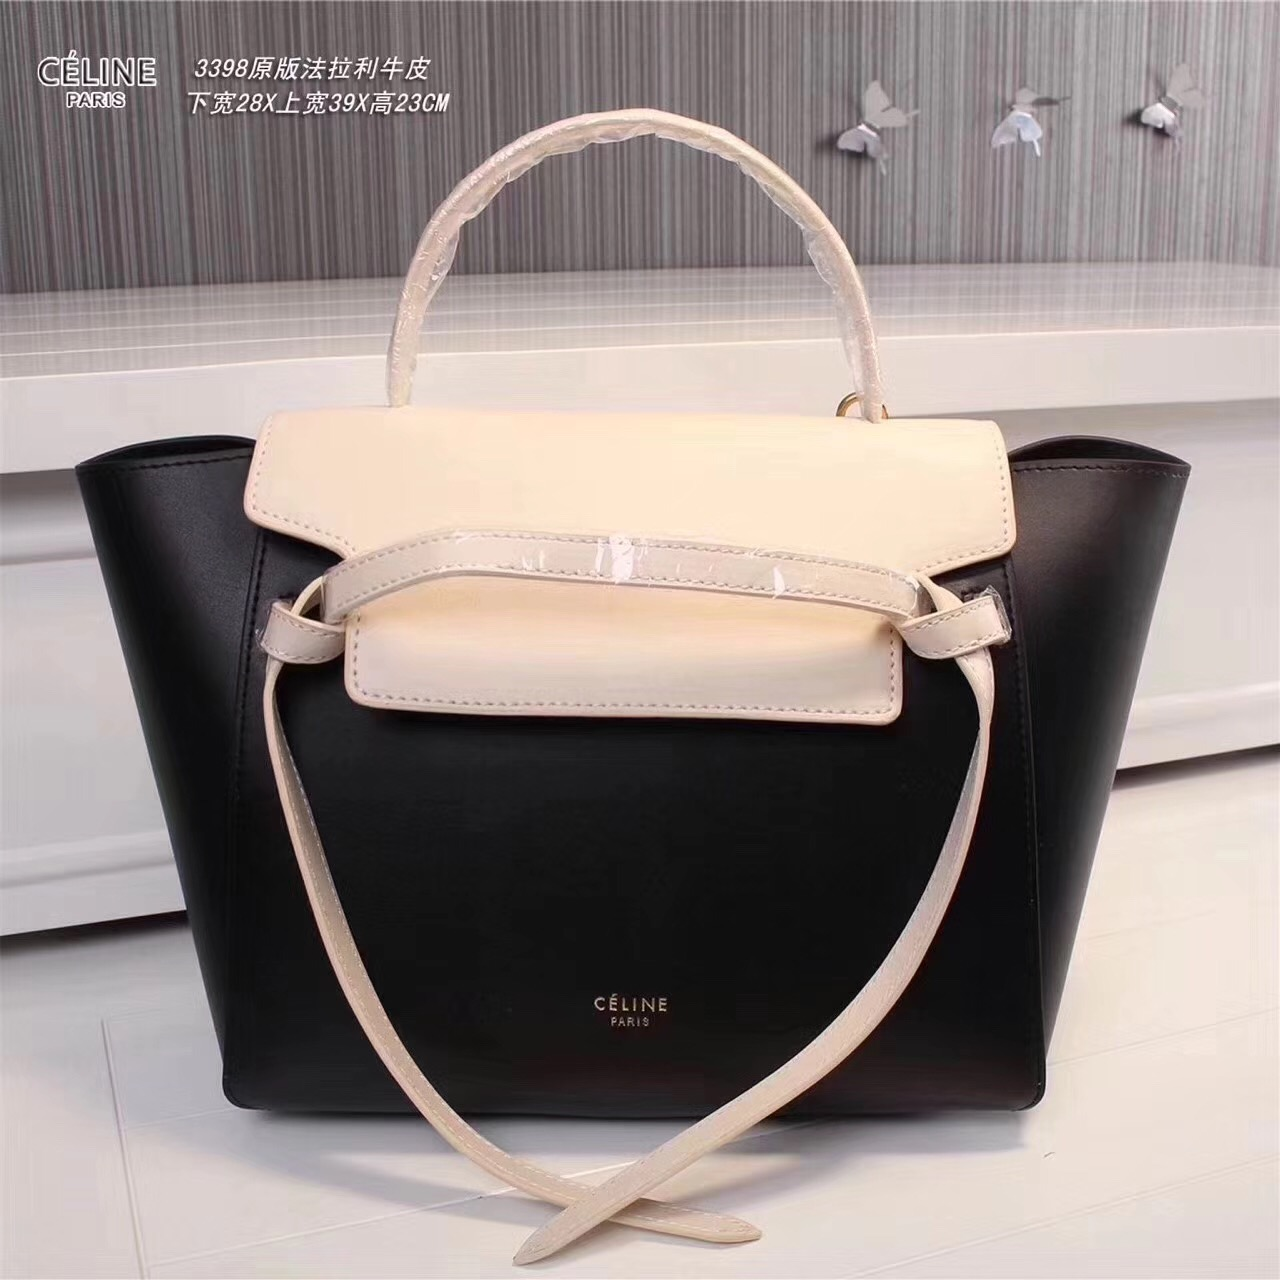 Celine Belt Bag Smooth Leather Tote Handbag Black White